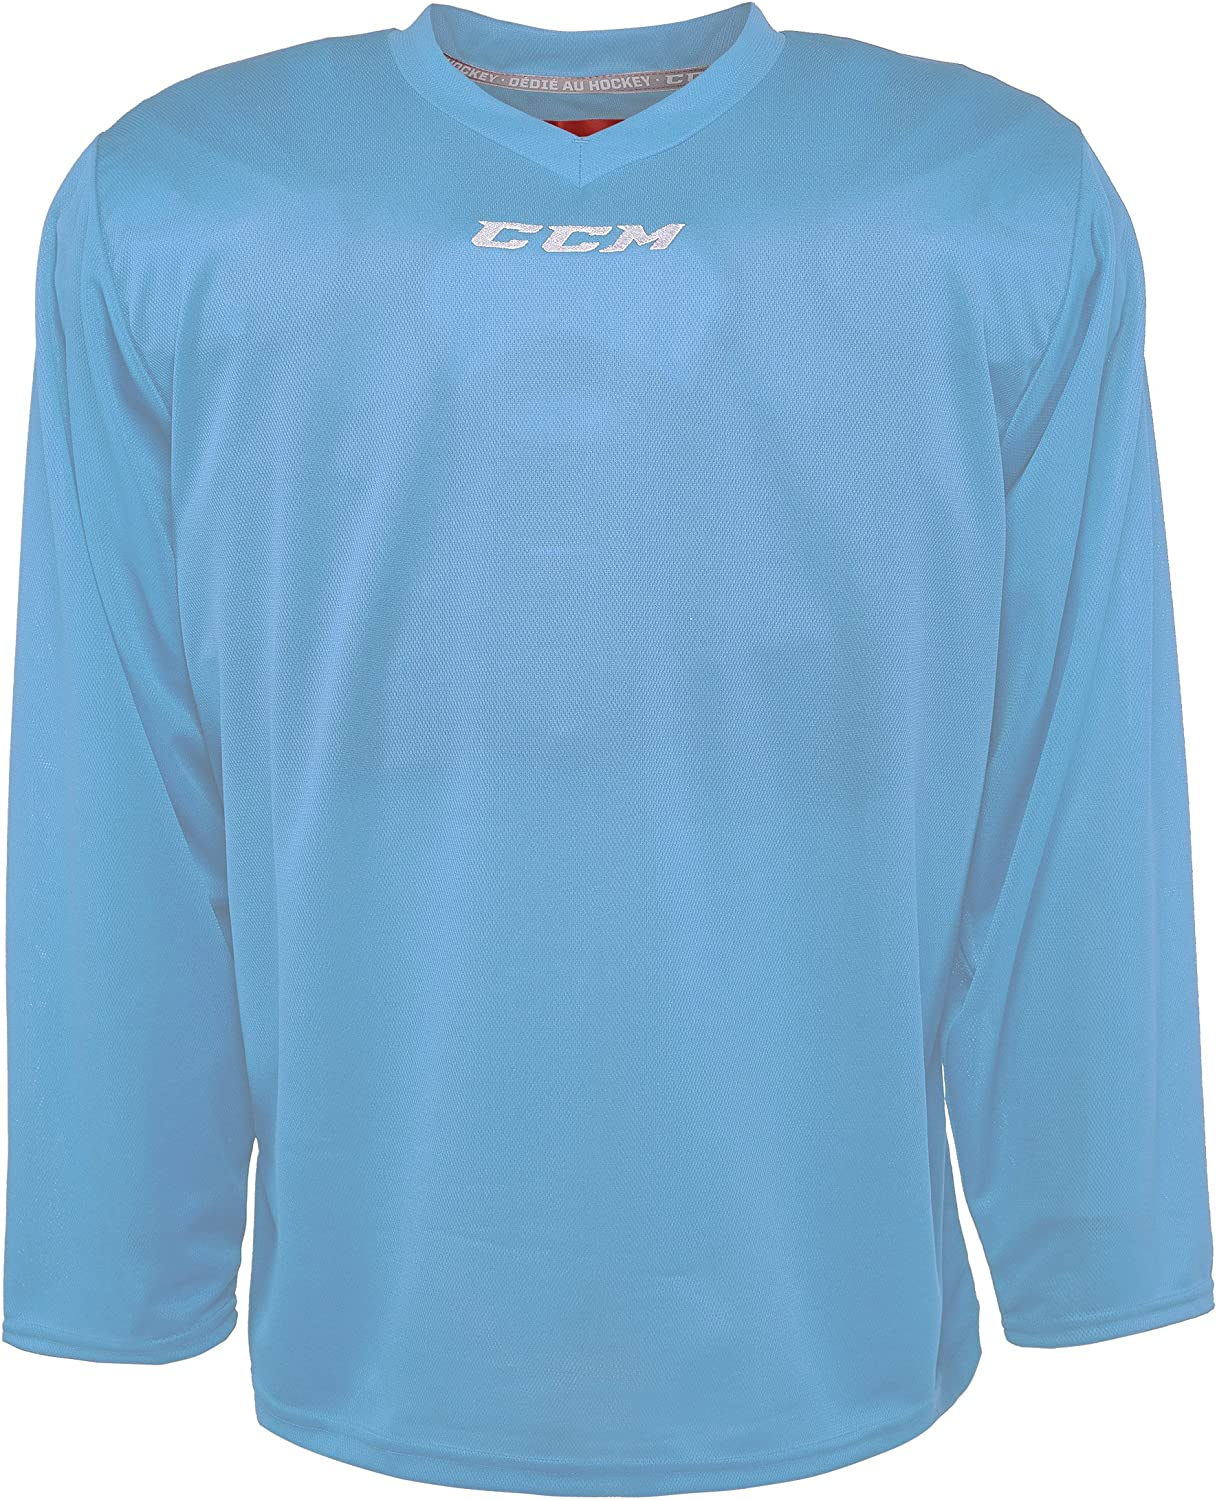 Junior Columbia Blue CCM 5000 Series Hockey Practice Jersey Large-X-Large